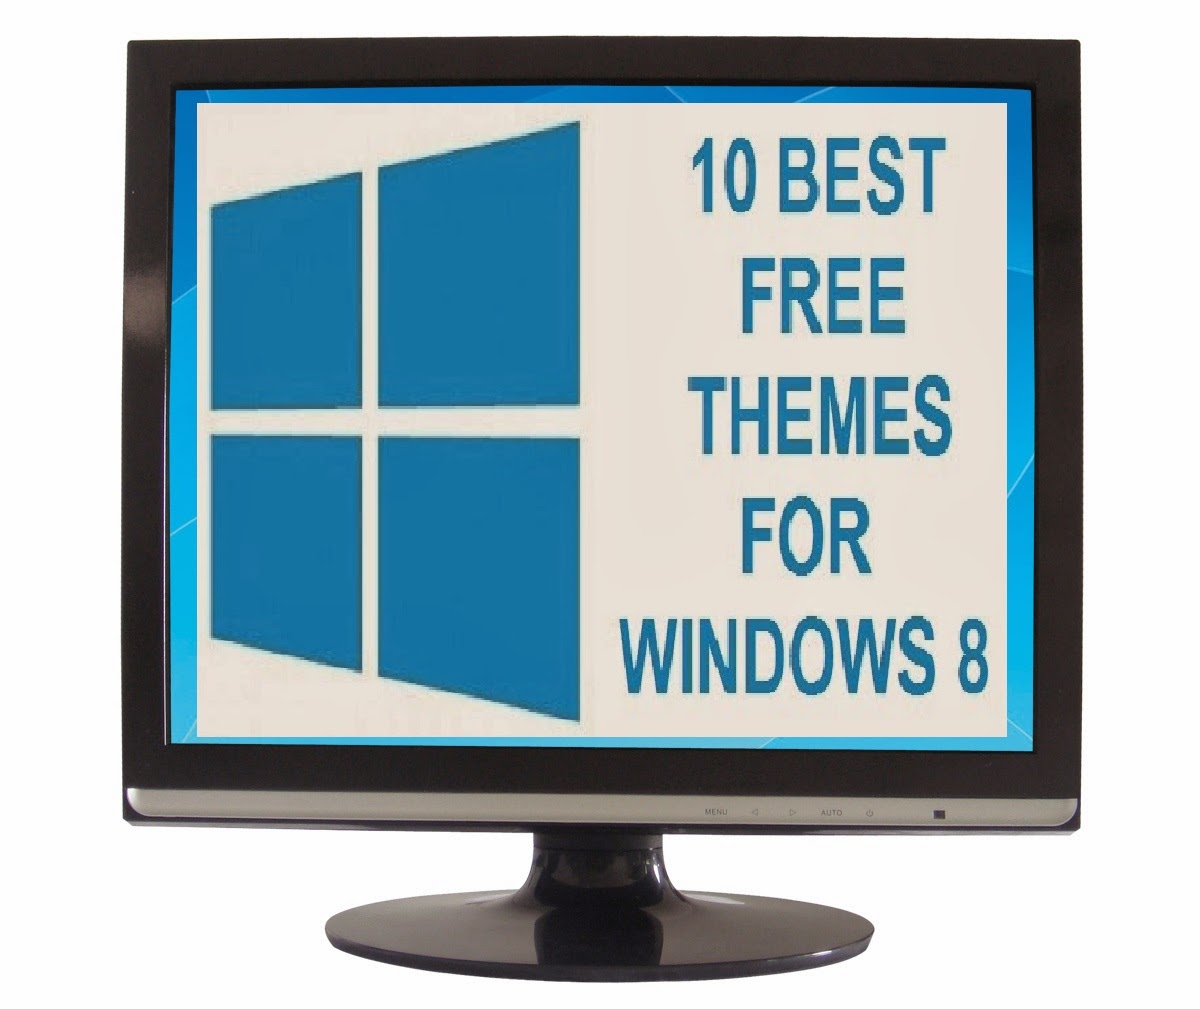 10 best free themes for windows 8